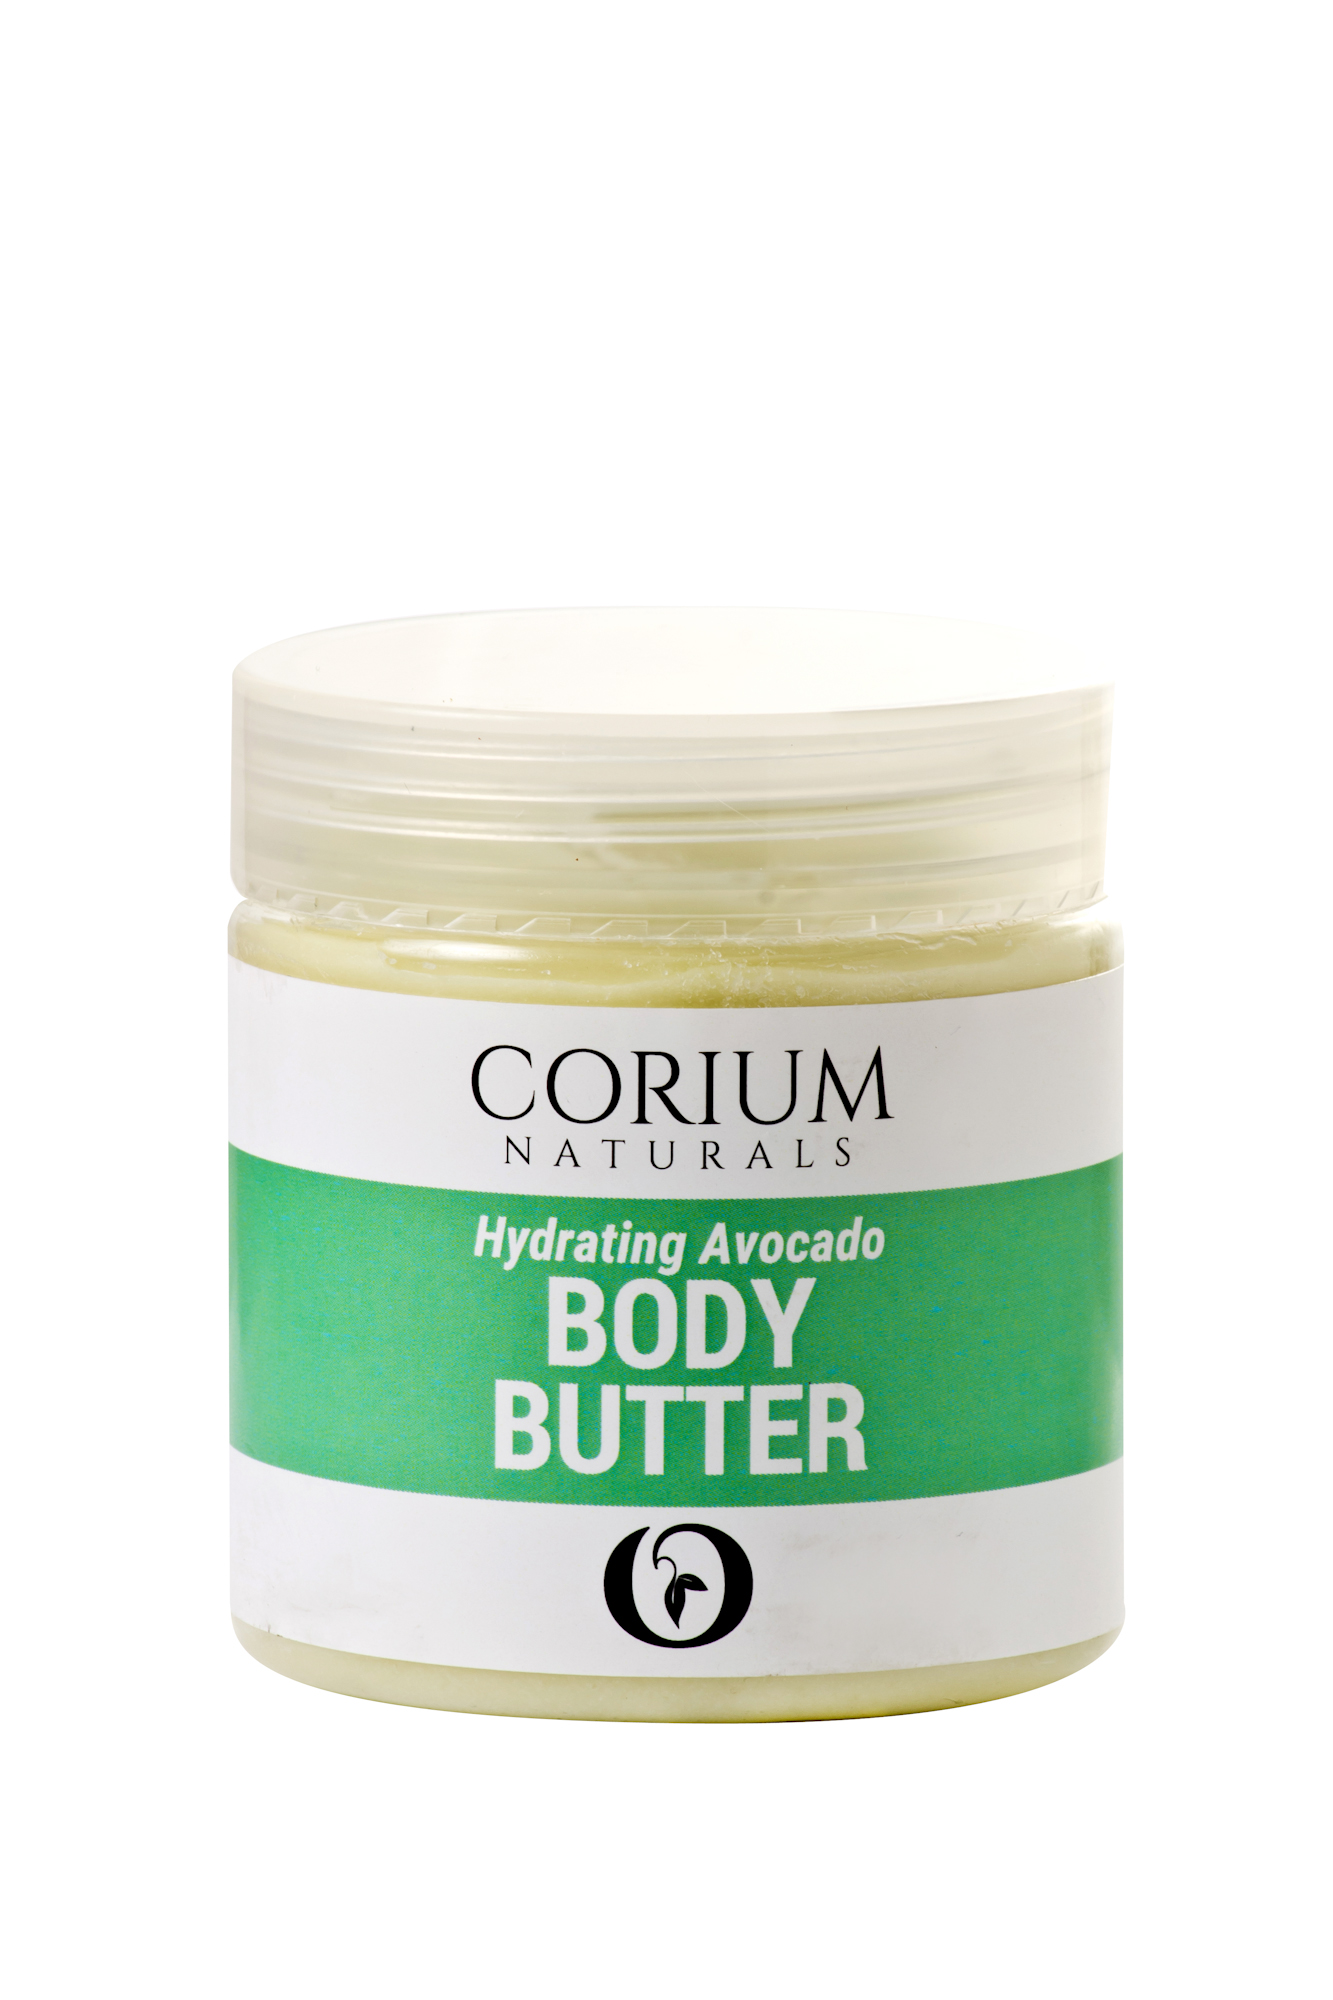 Rich, luxurious body butter comprising of a high percentage of avocado butter and whipped-in organic grade carrier oils.